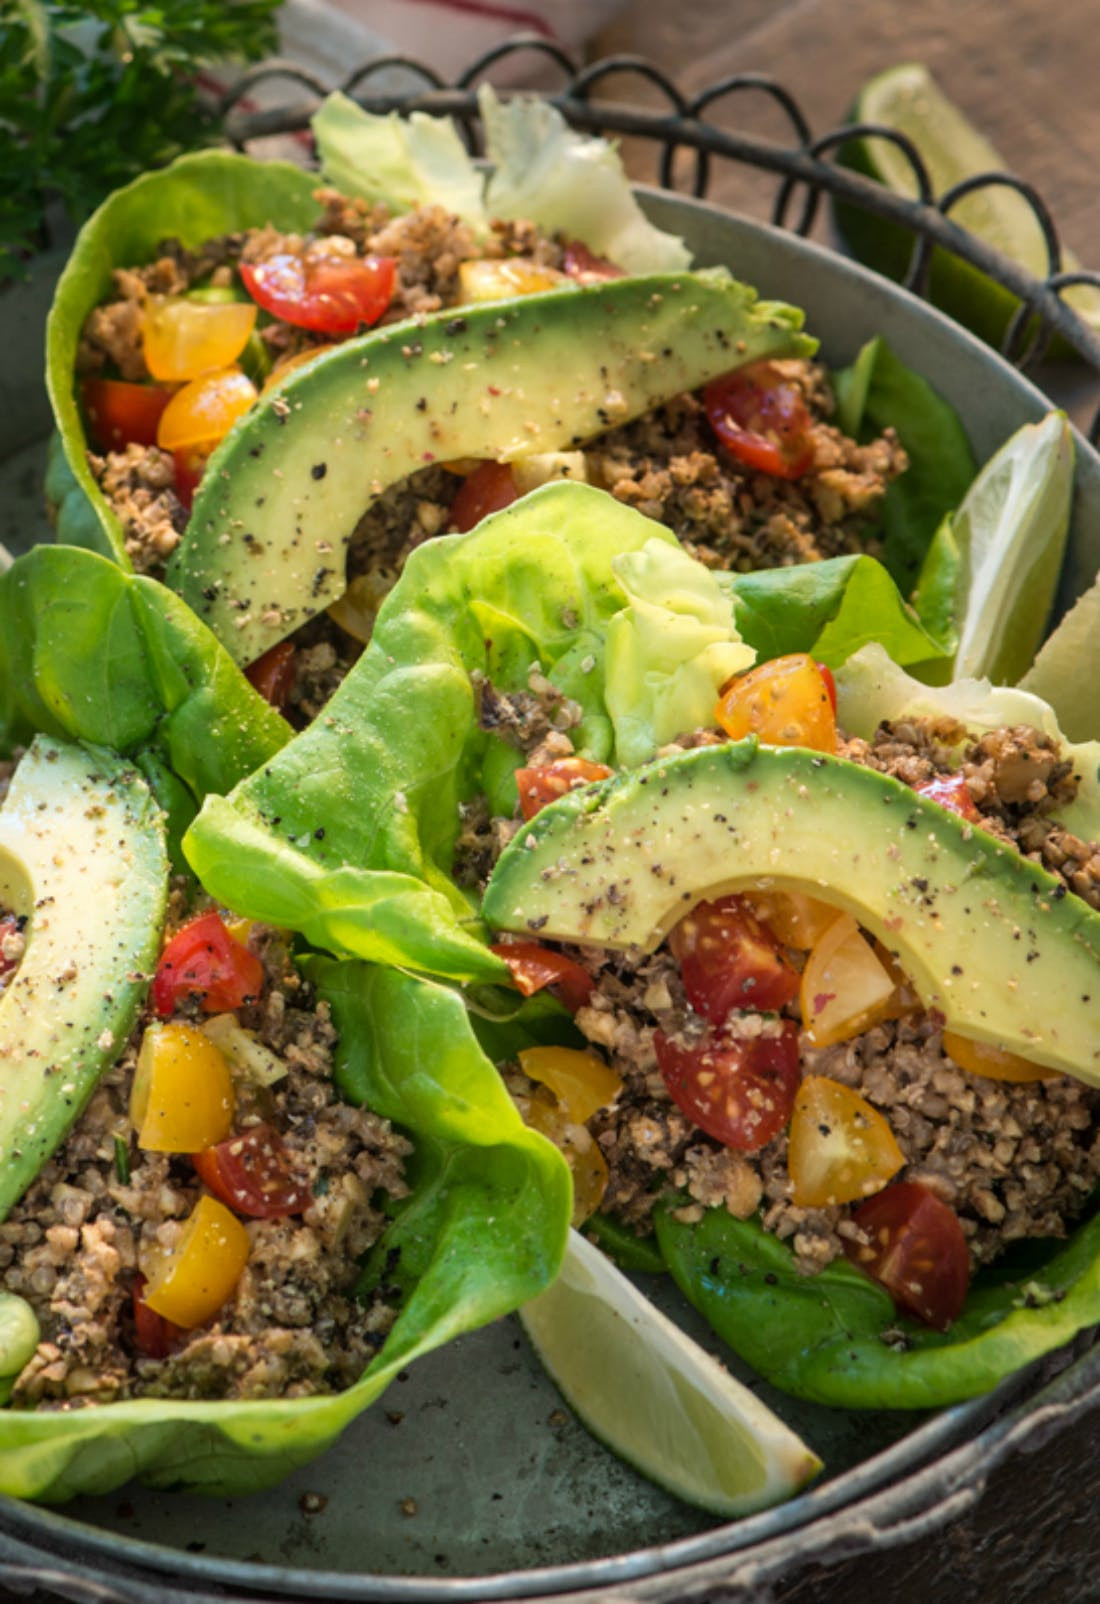 Organic Vegan Recipes the 20 Best Ideas for 16 Raw Vegan Recipes You're Craving Right now